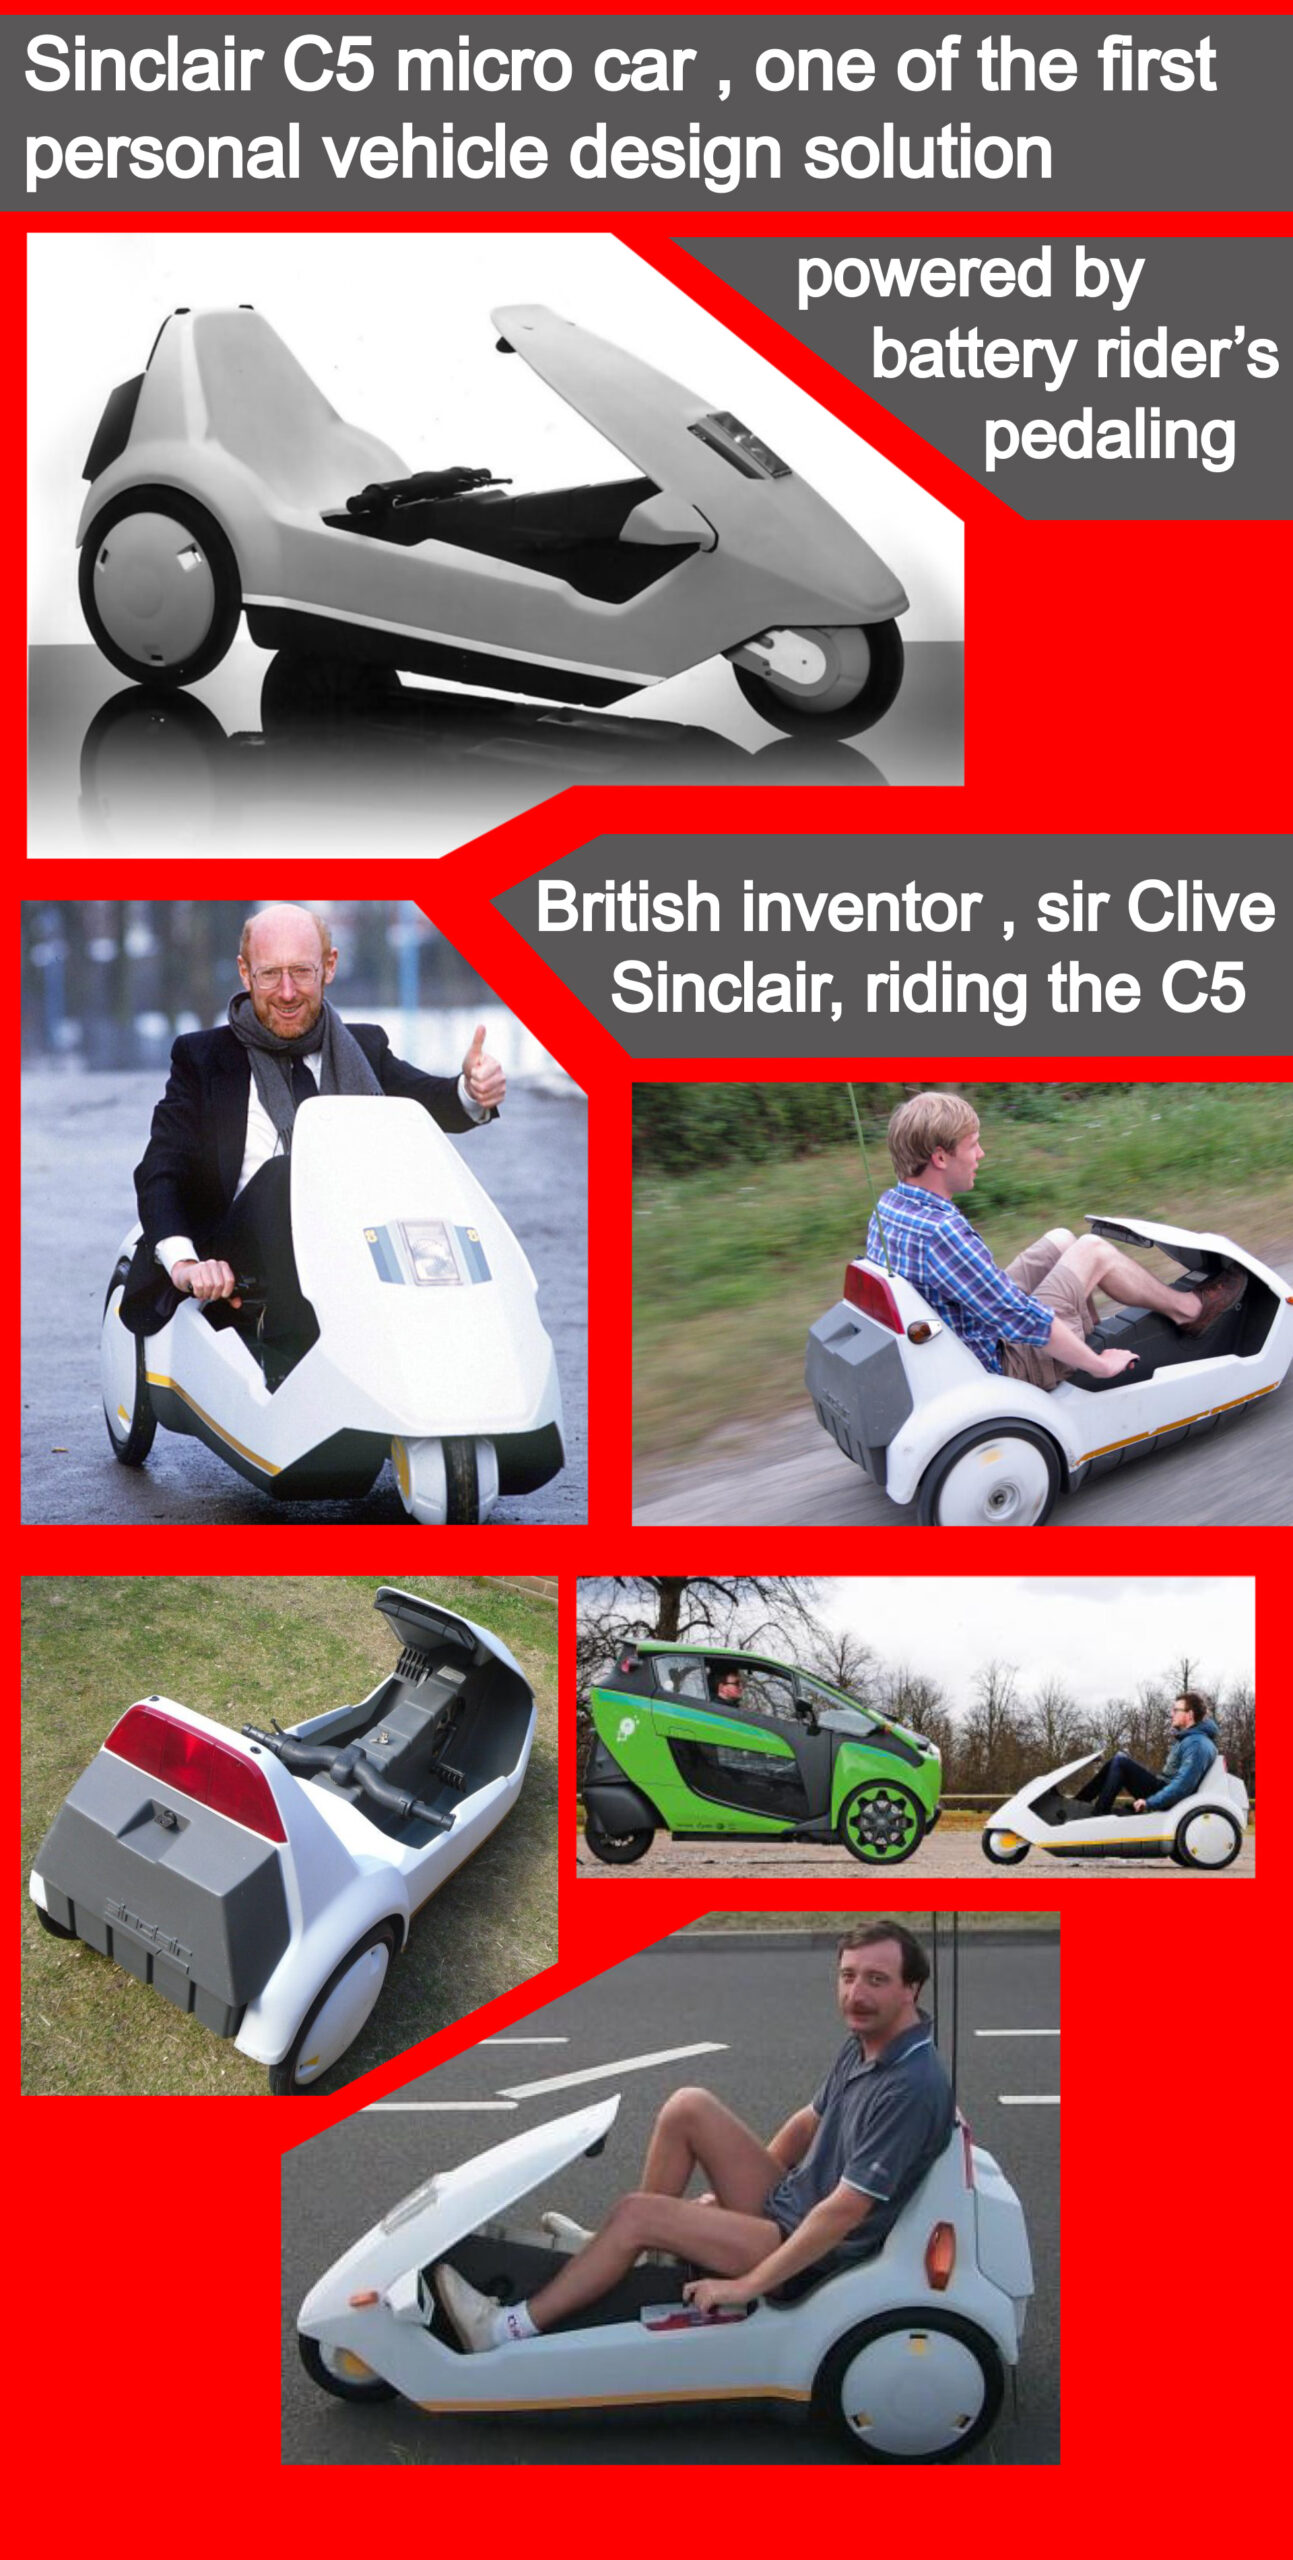 A notable example among these personalities was the British inventor sir Clive Sinclair who was among the early people to predict in the 80s that modern 4 seats car is not the perfect and ideal urban personal transport vehicle and that the best solutions to traffic congestion and urban air pollution would be designing the most compact car that would be electrically powered and pedal assisted car . His design solution for an urban personal transport vehicle was the Sinclair C5 .